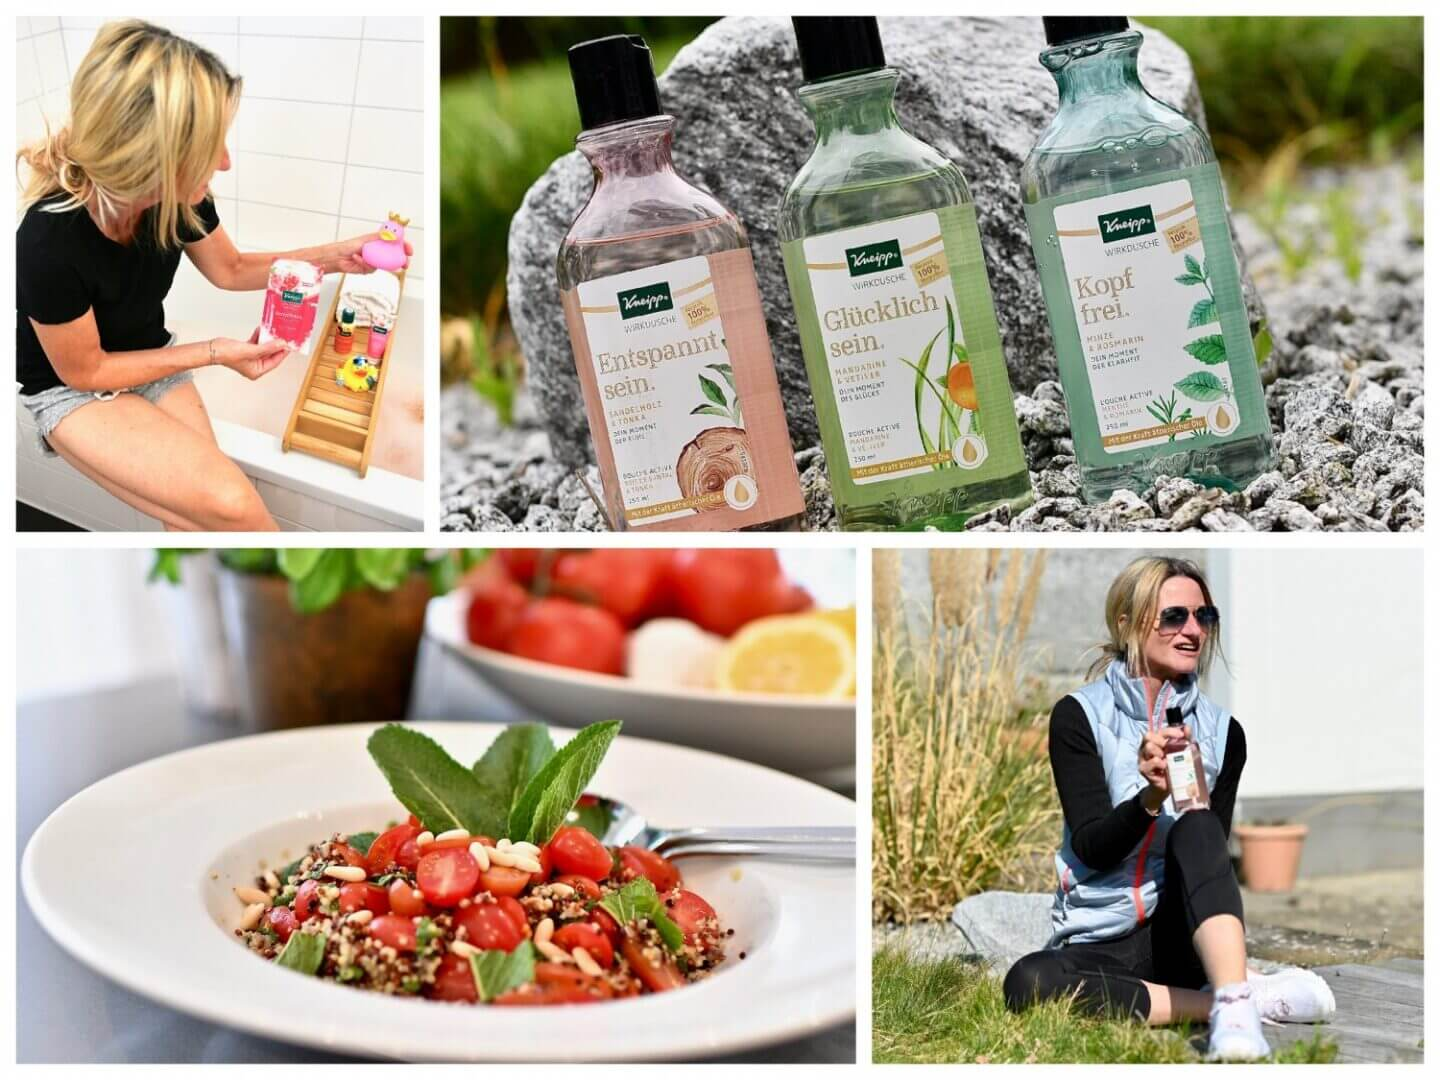 How to Use the 5 Kneipp Pillars to Stay Healthy and Happy at Home